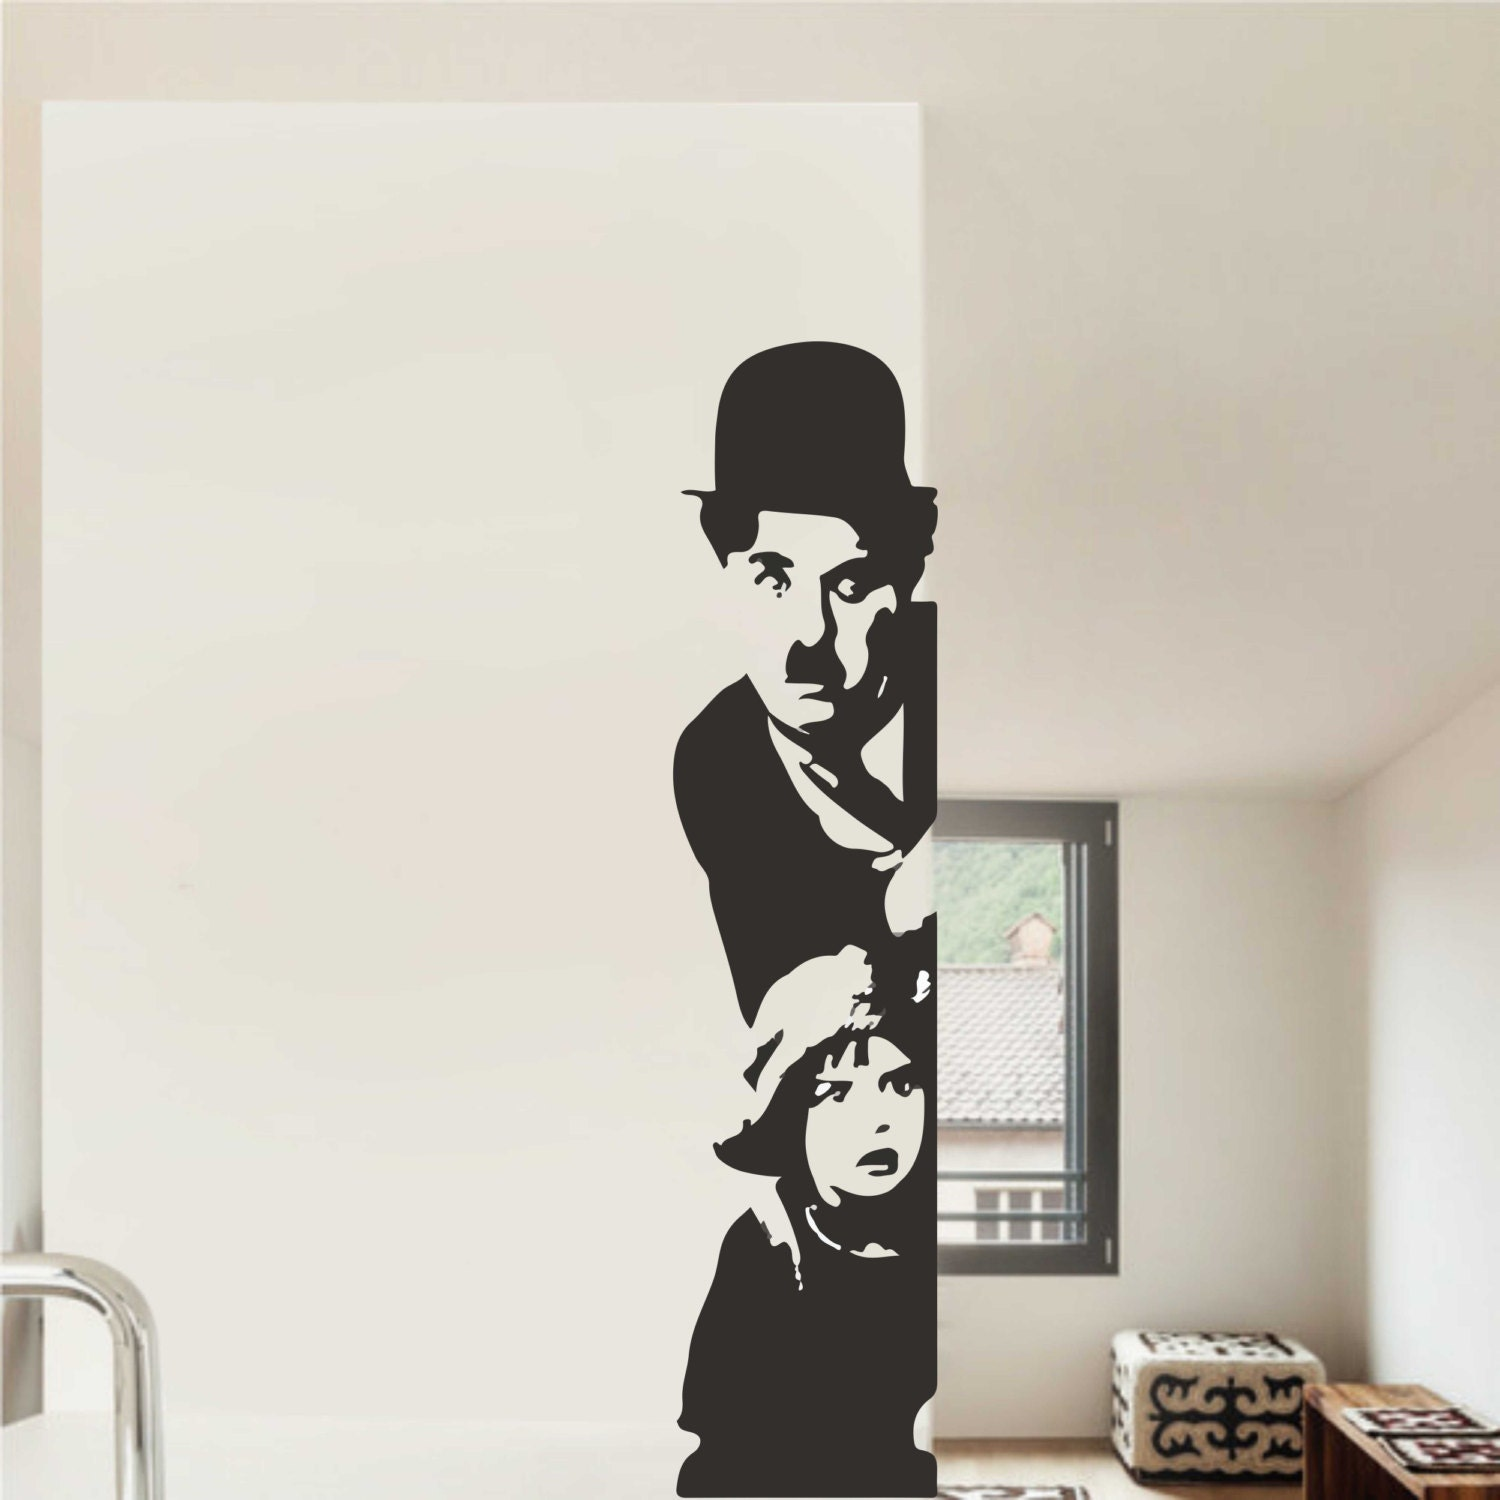 charlie chaplin wall decal home decor famous icons decals. Black Bedroom Furniture Sets. Home Design Ideas